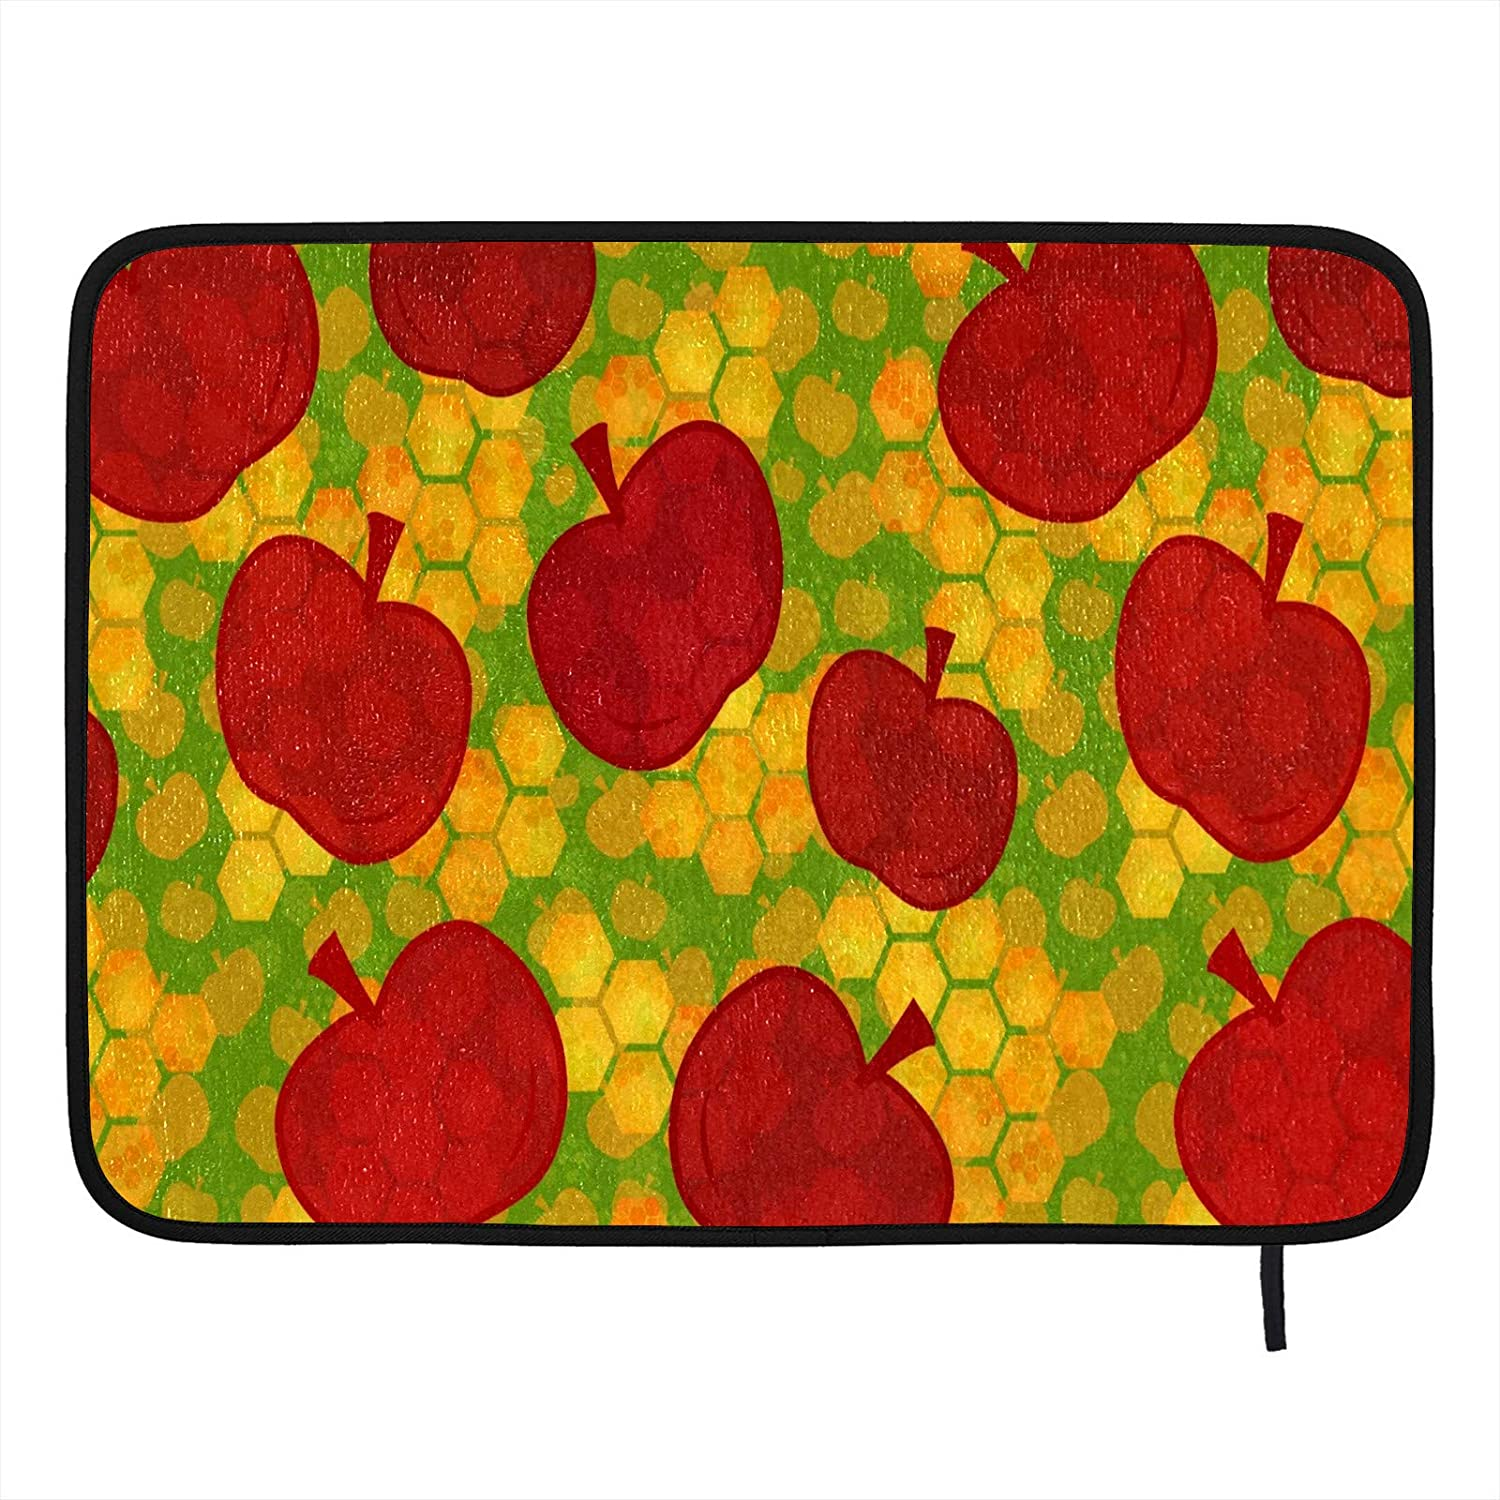 Absorbent Dish Drying Mat Red Apple Orange Green Pattern Kitchen Counter Mat Protector Heat Resistant Drying Pad Protector Suitable for Kitchen Sink Dining Table decor 18×16 inch